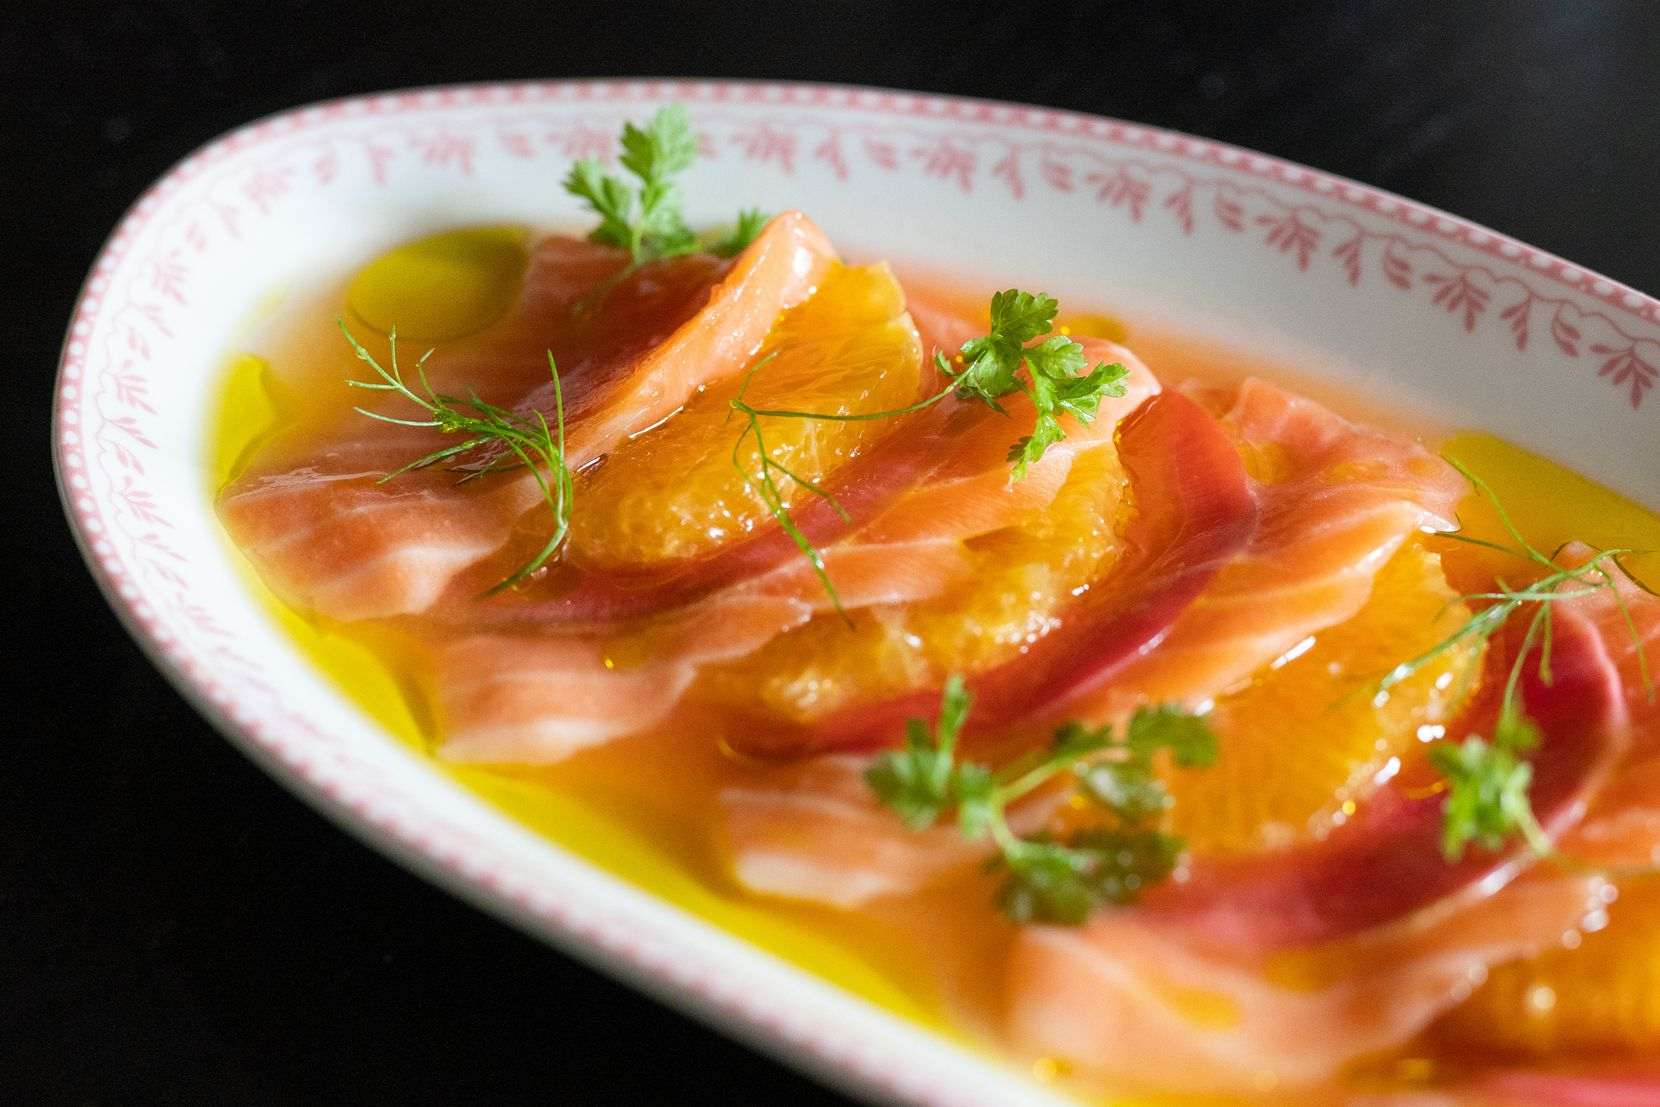 An aperitif of salmon, radish and orange blossom is bright and light.  Sister opened on Greenville Avenue in Dallas on September 28, 2021.